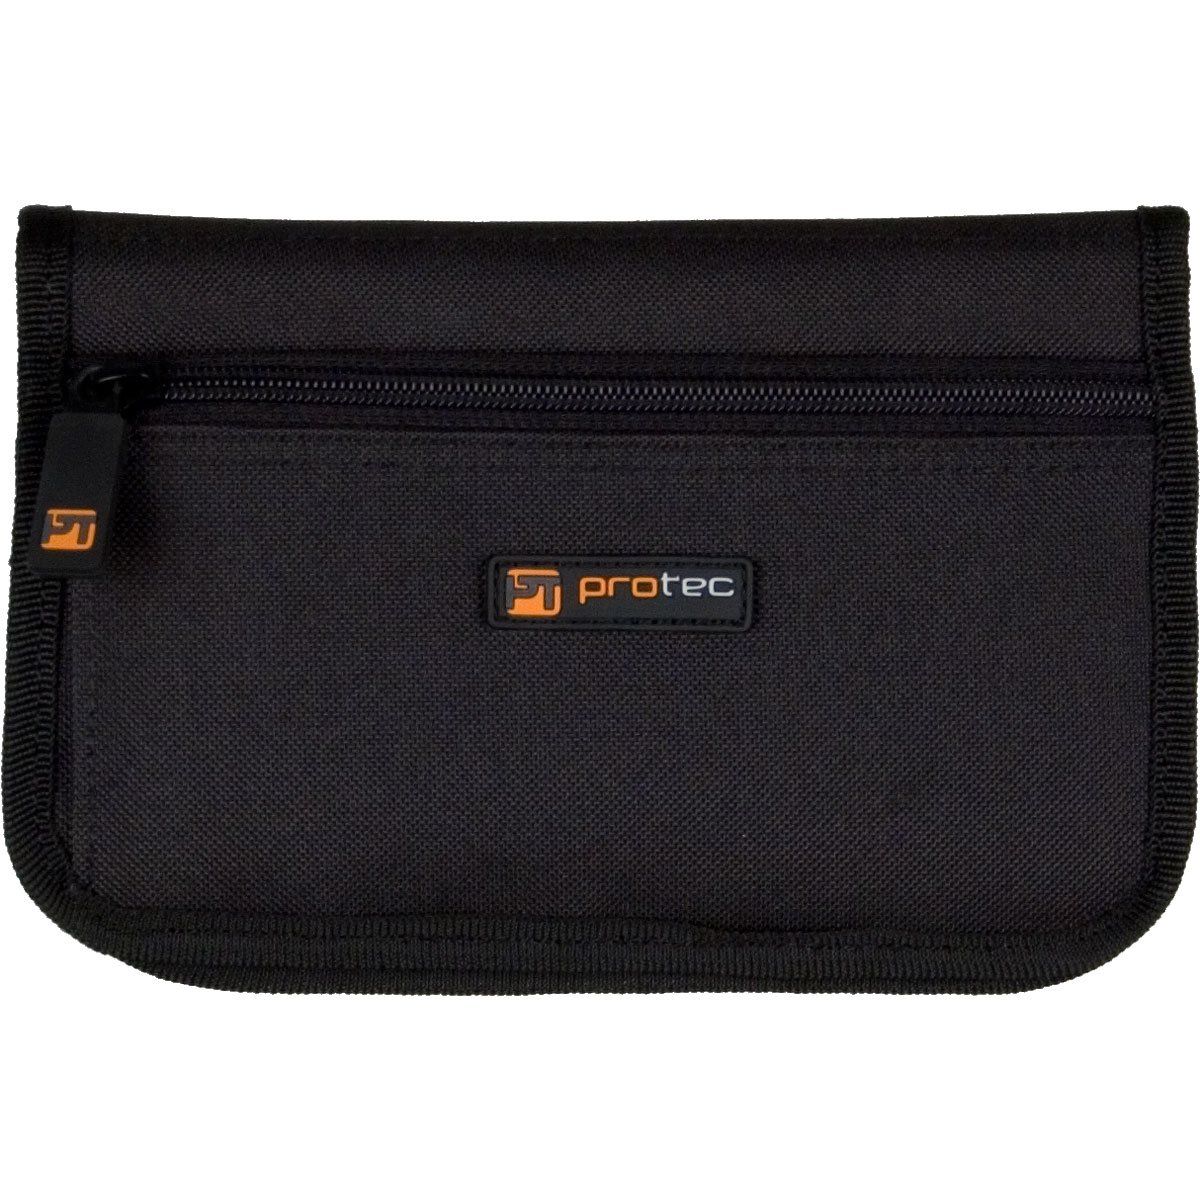 Protec Trumpet 4-Piece Padded Mouthpiece Pouch A221